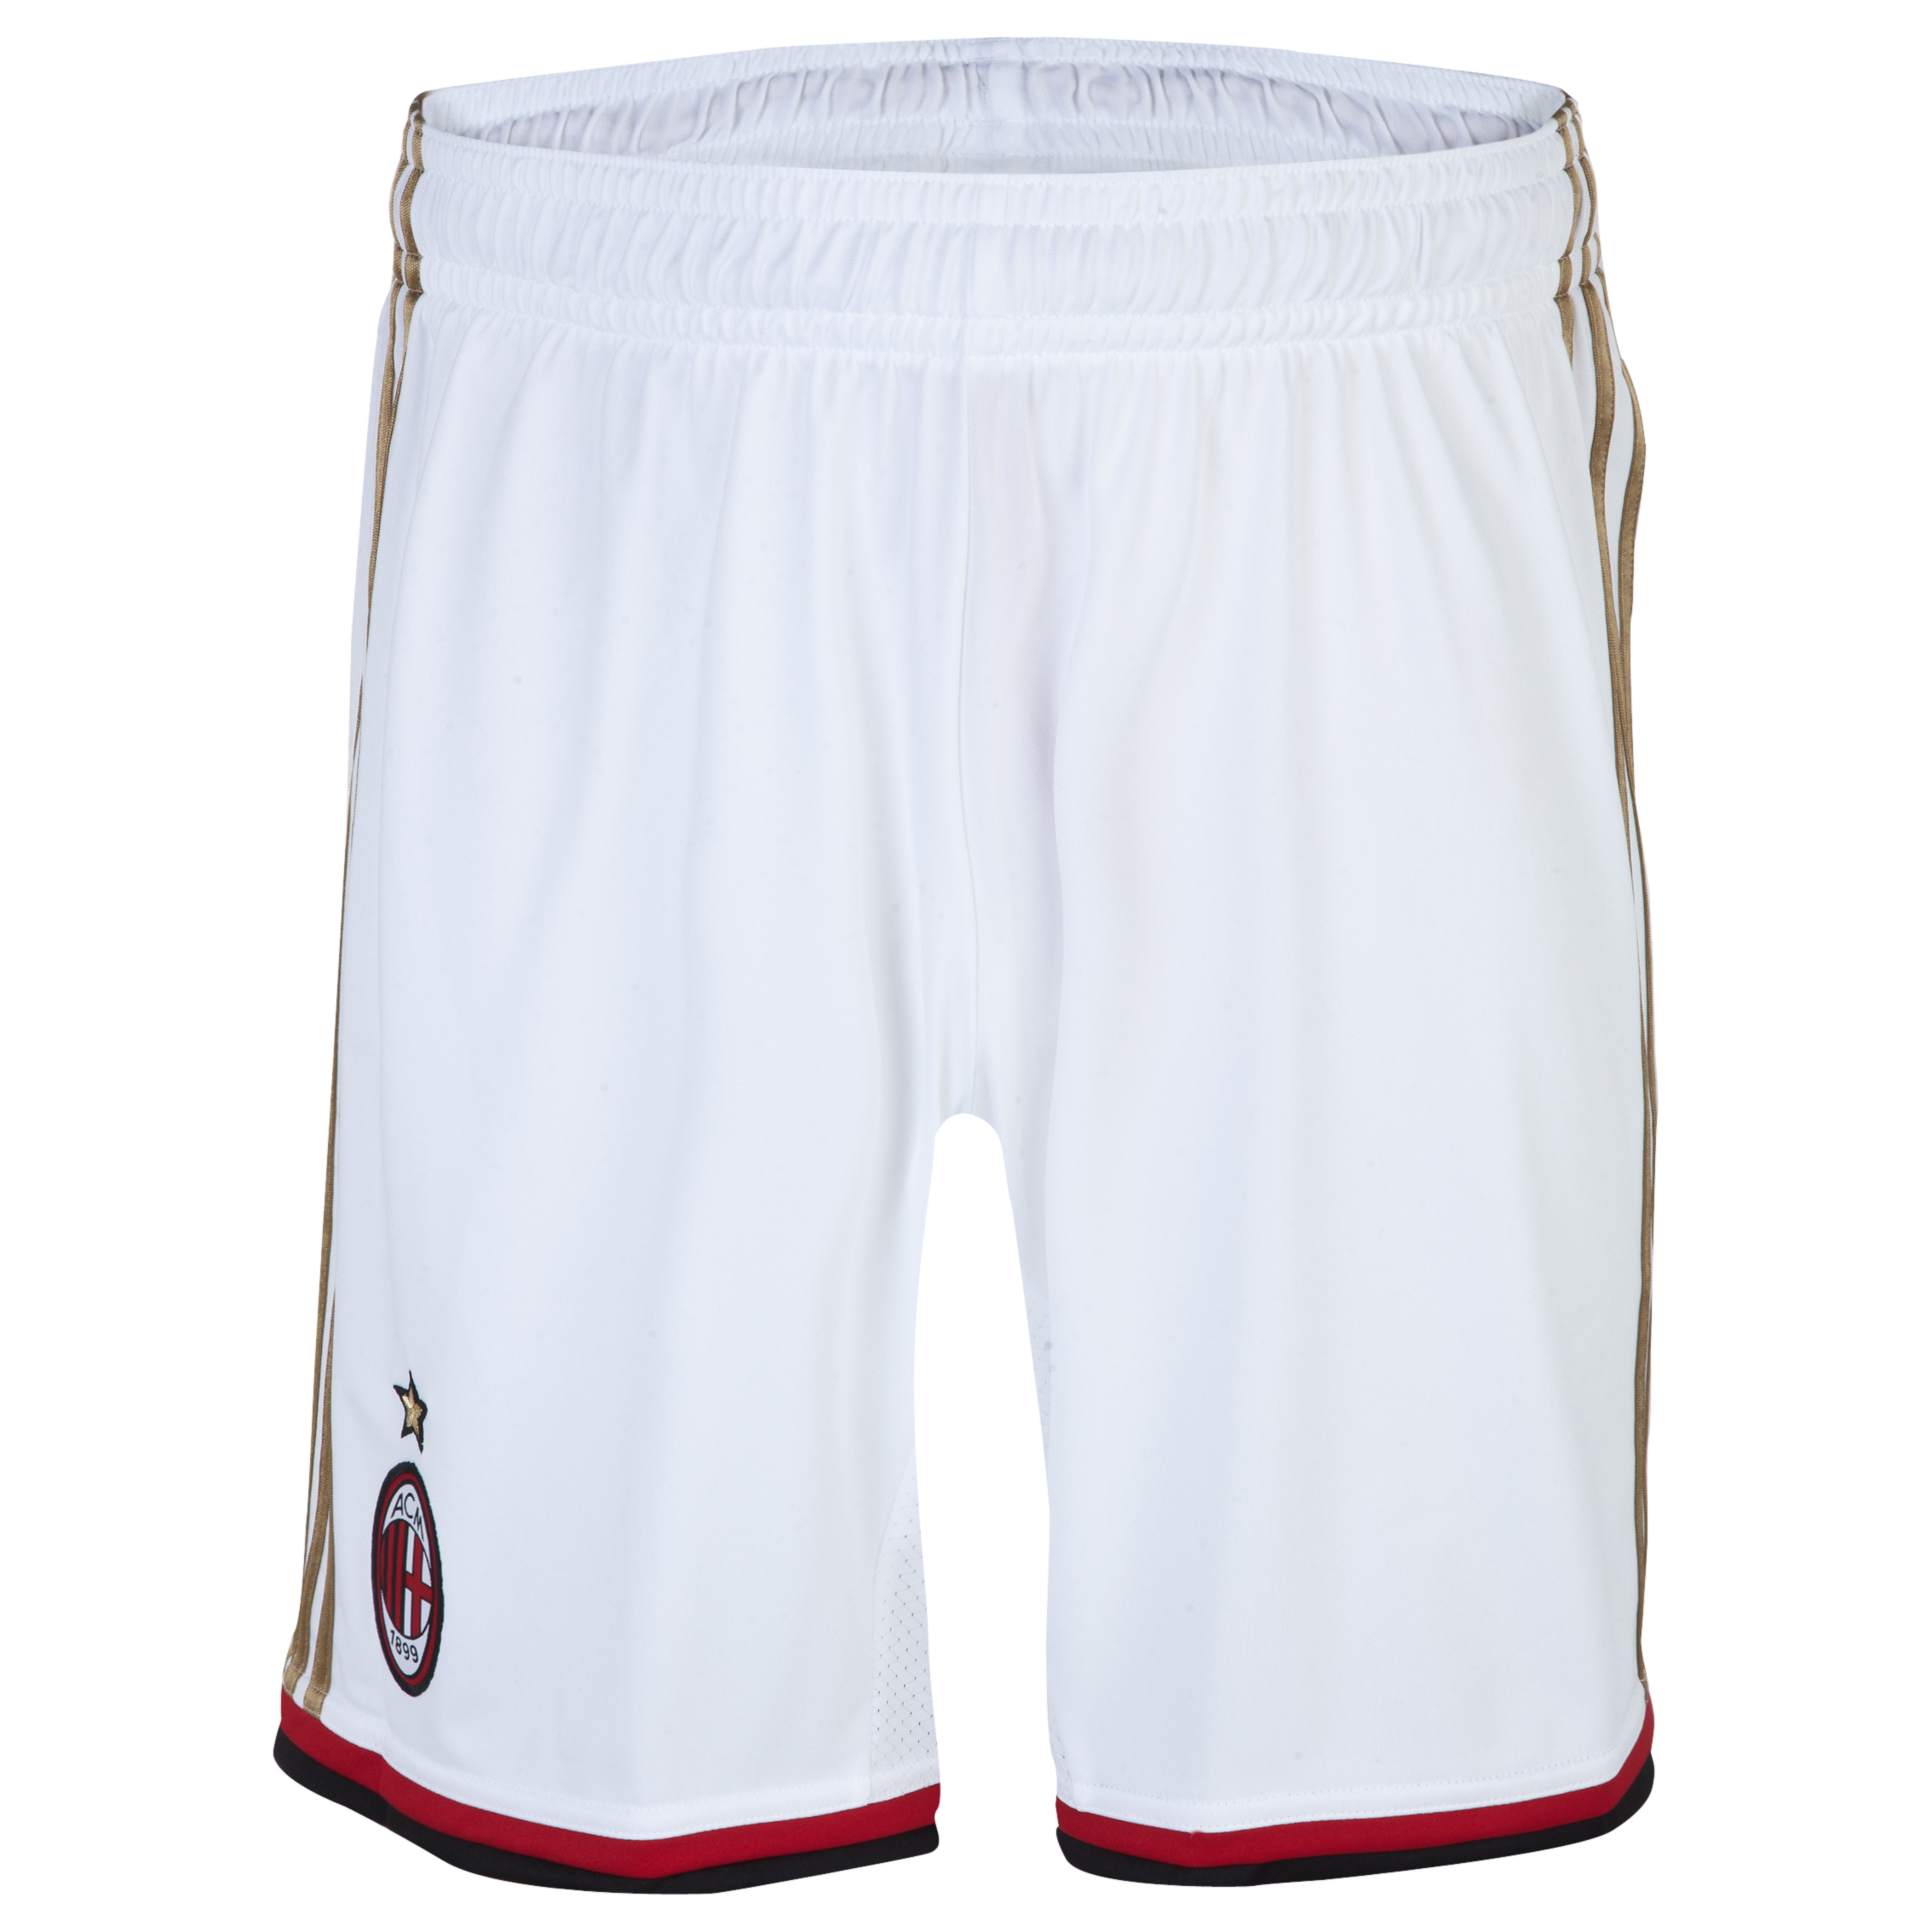 AC Milan Home/Away Shorts 2013/14